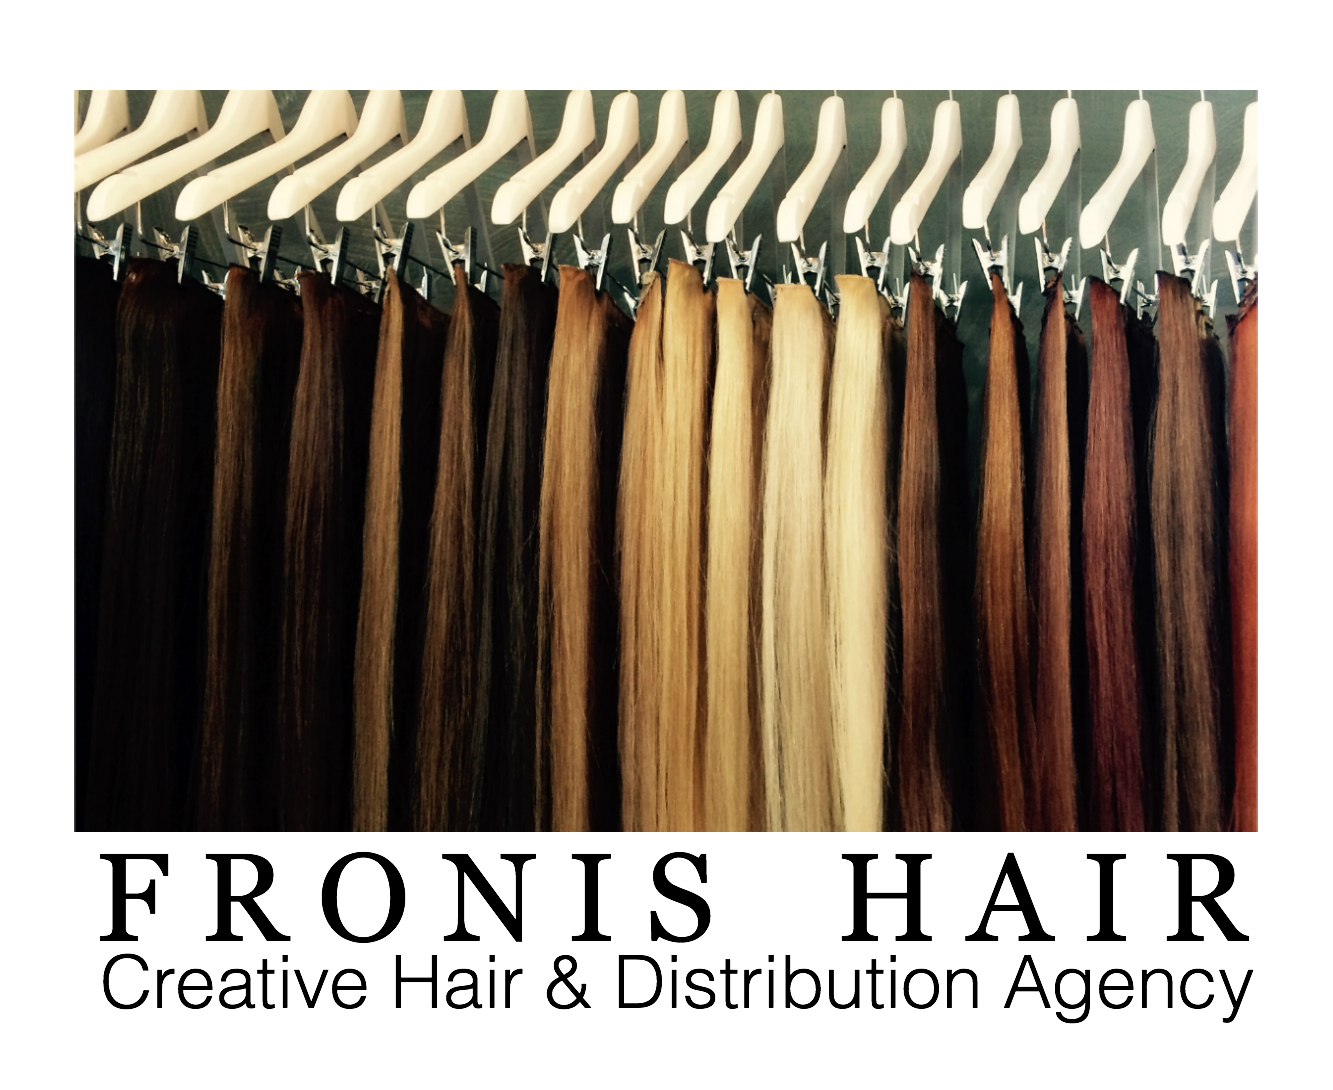 FRONIS HAIR Creative Hair & Distribution Agency